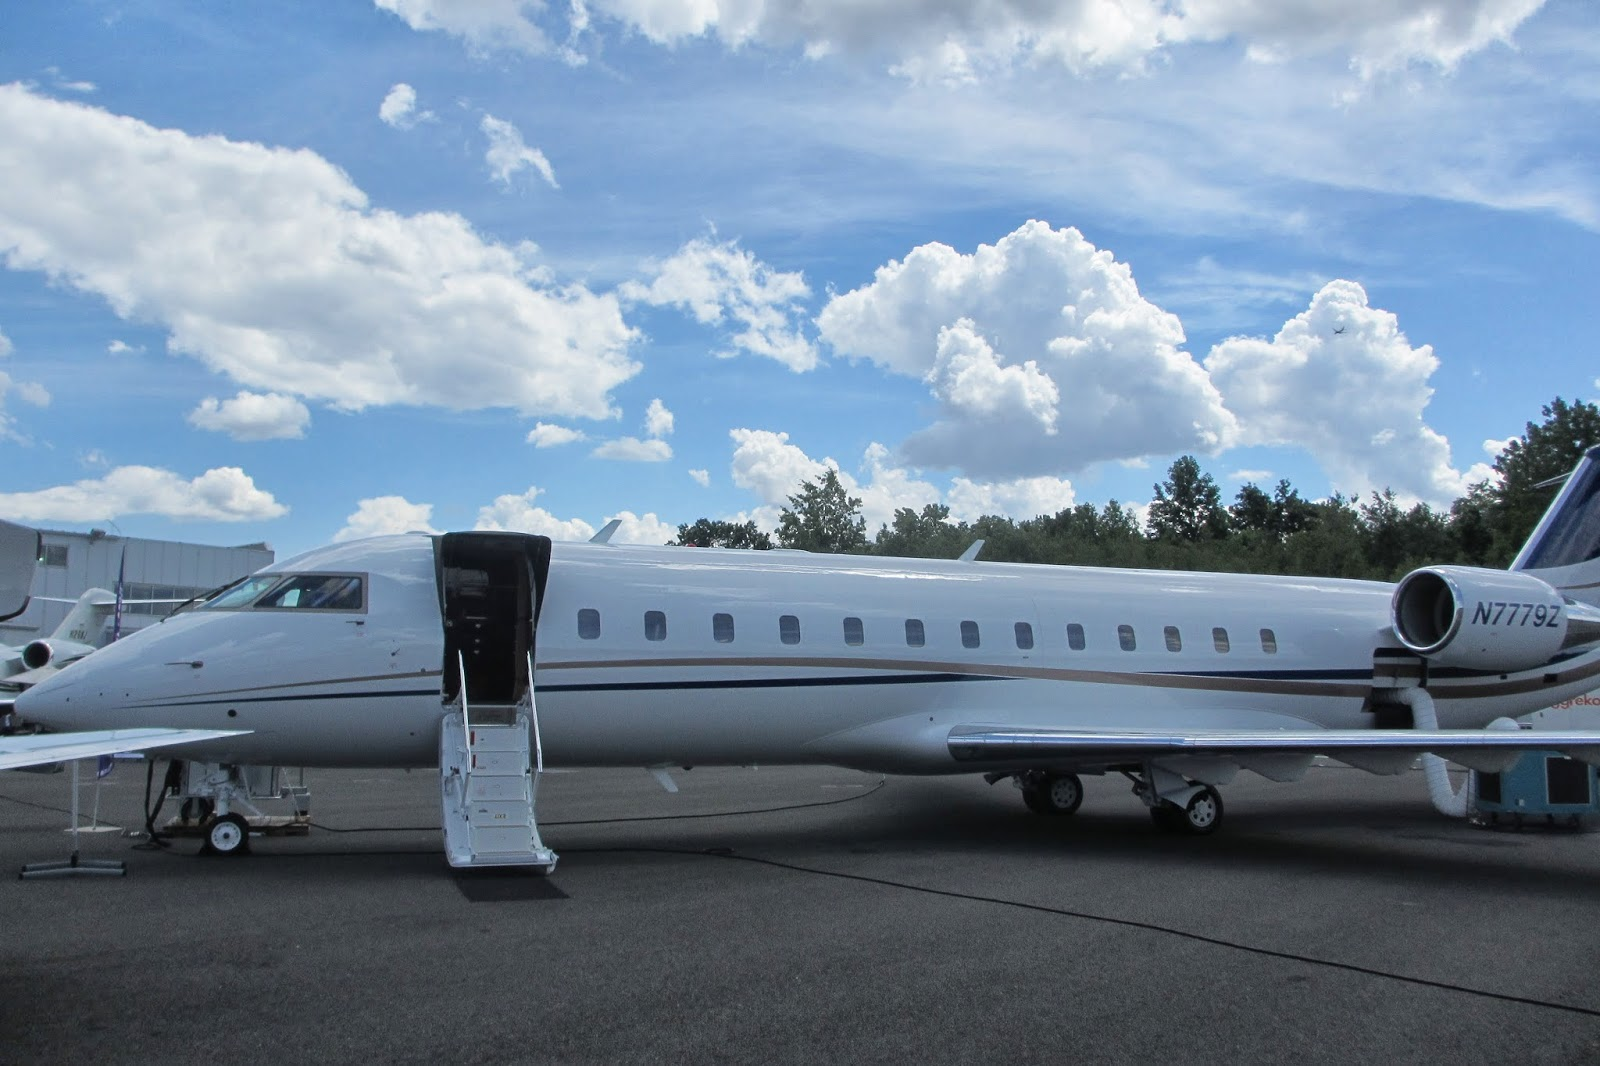 One of the Tinubu's private jet, Bombardier Challenger worth $60Million